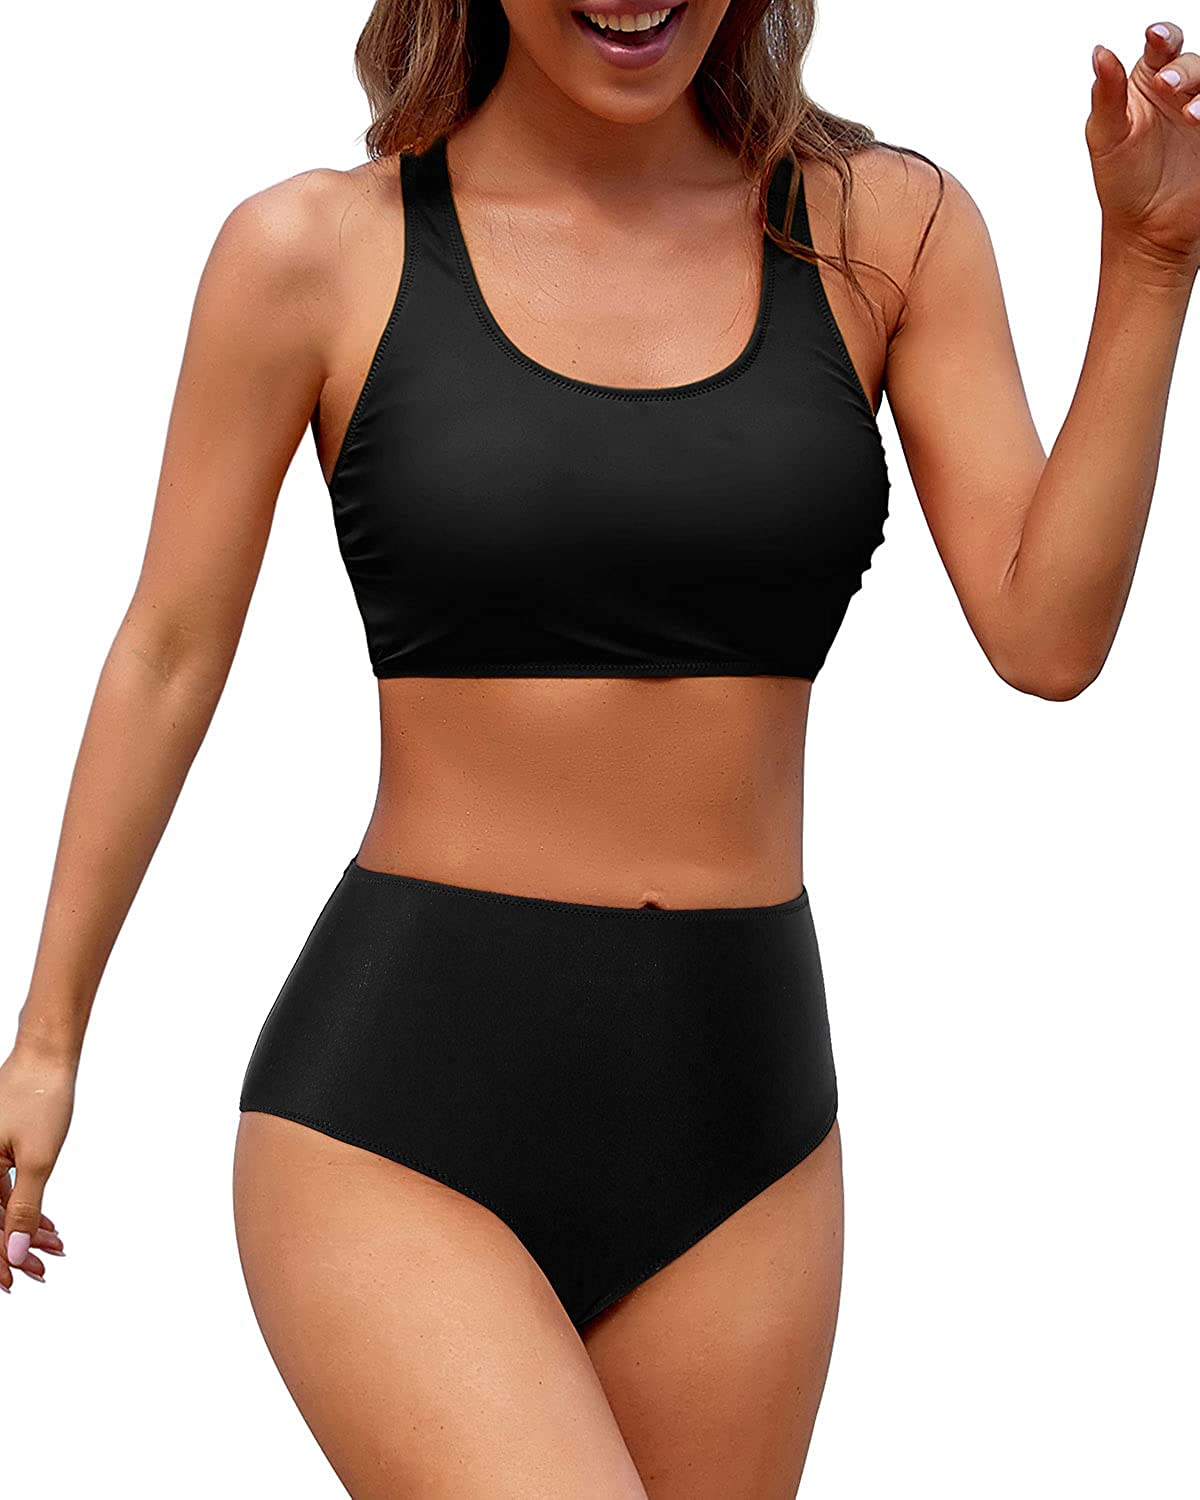 Holipick Sporty Bikini for Women Two Piece High Waisted Bathing Suit Athletic Swimsuit for Teen Girls Juniors